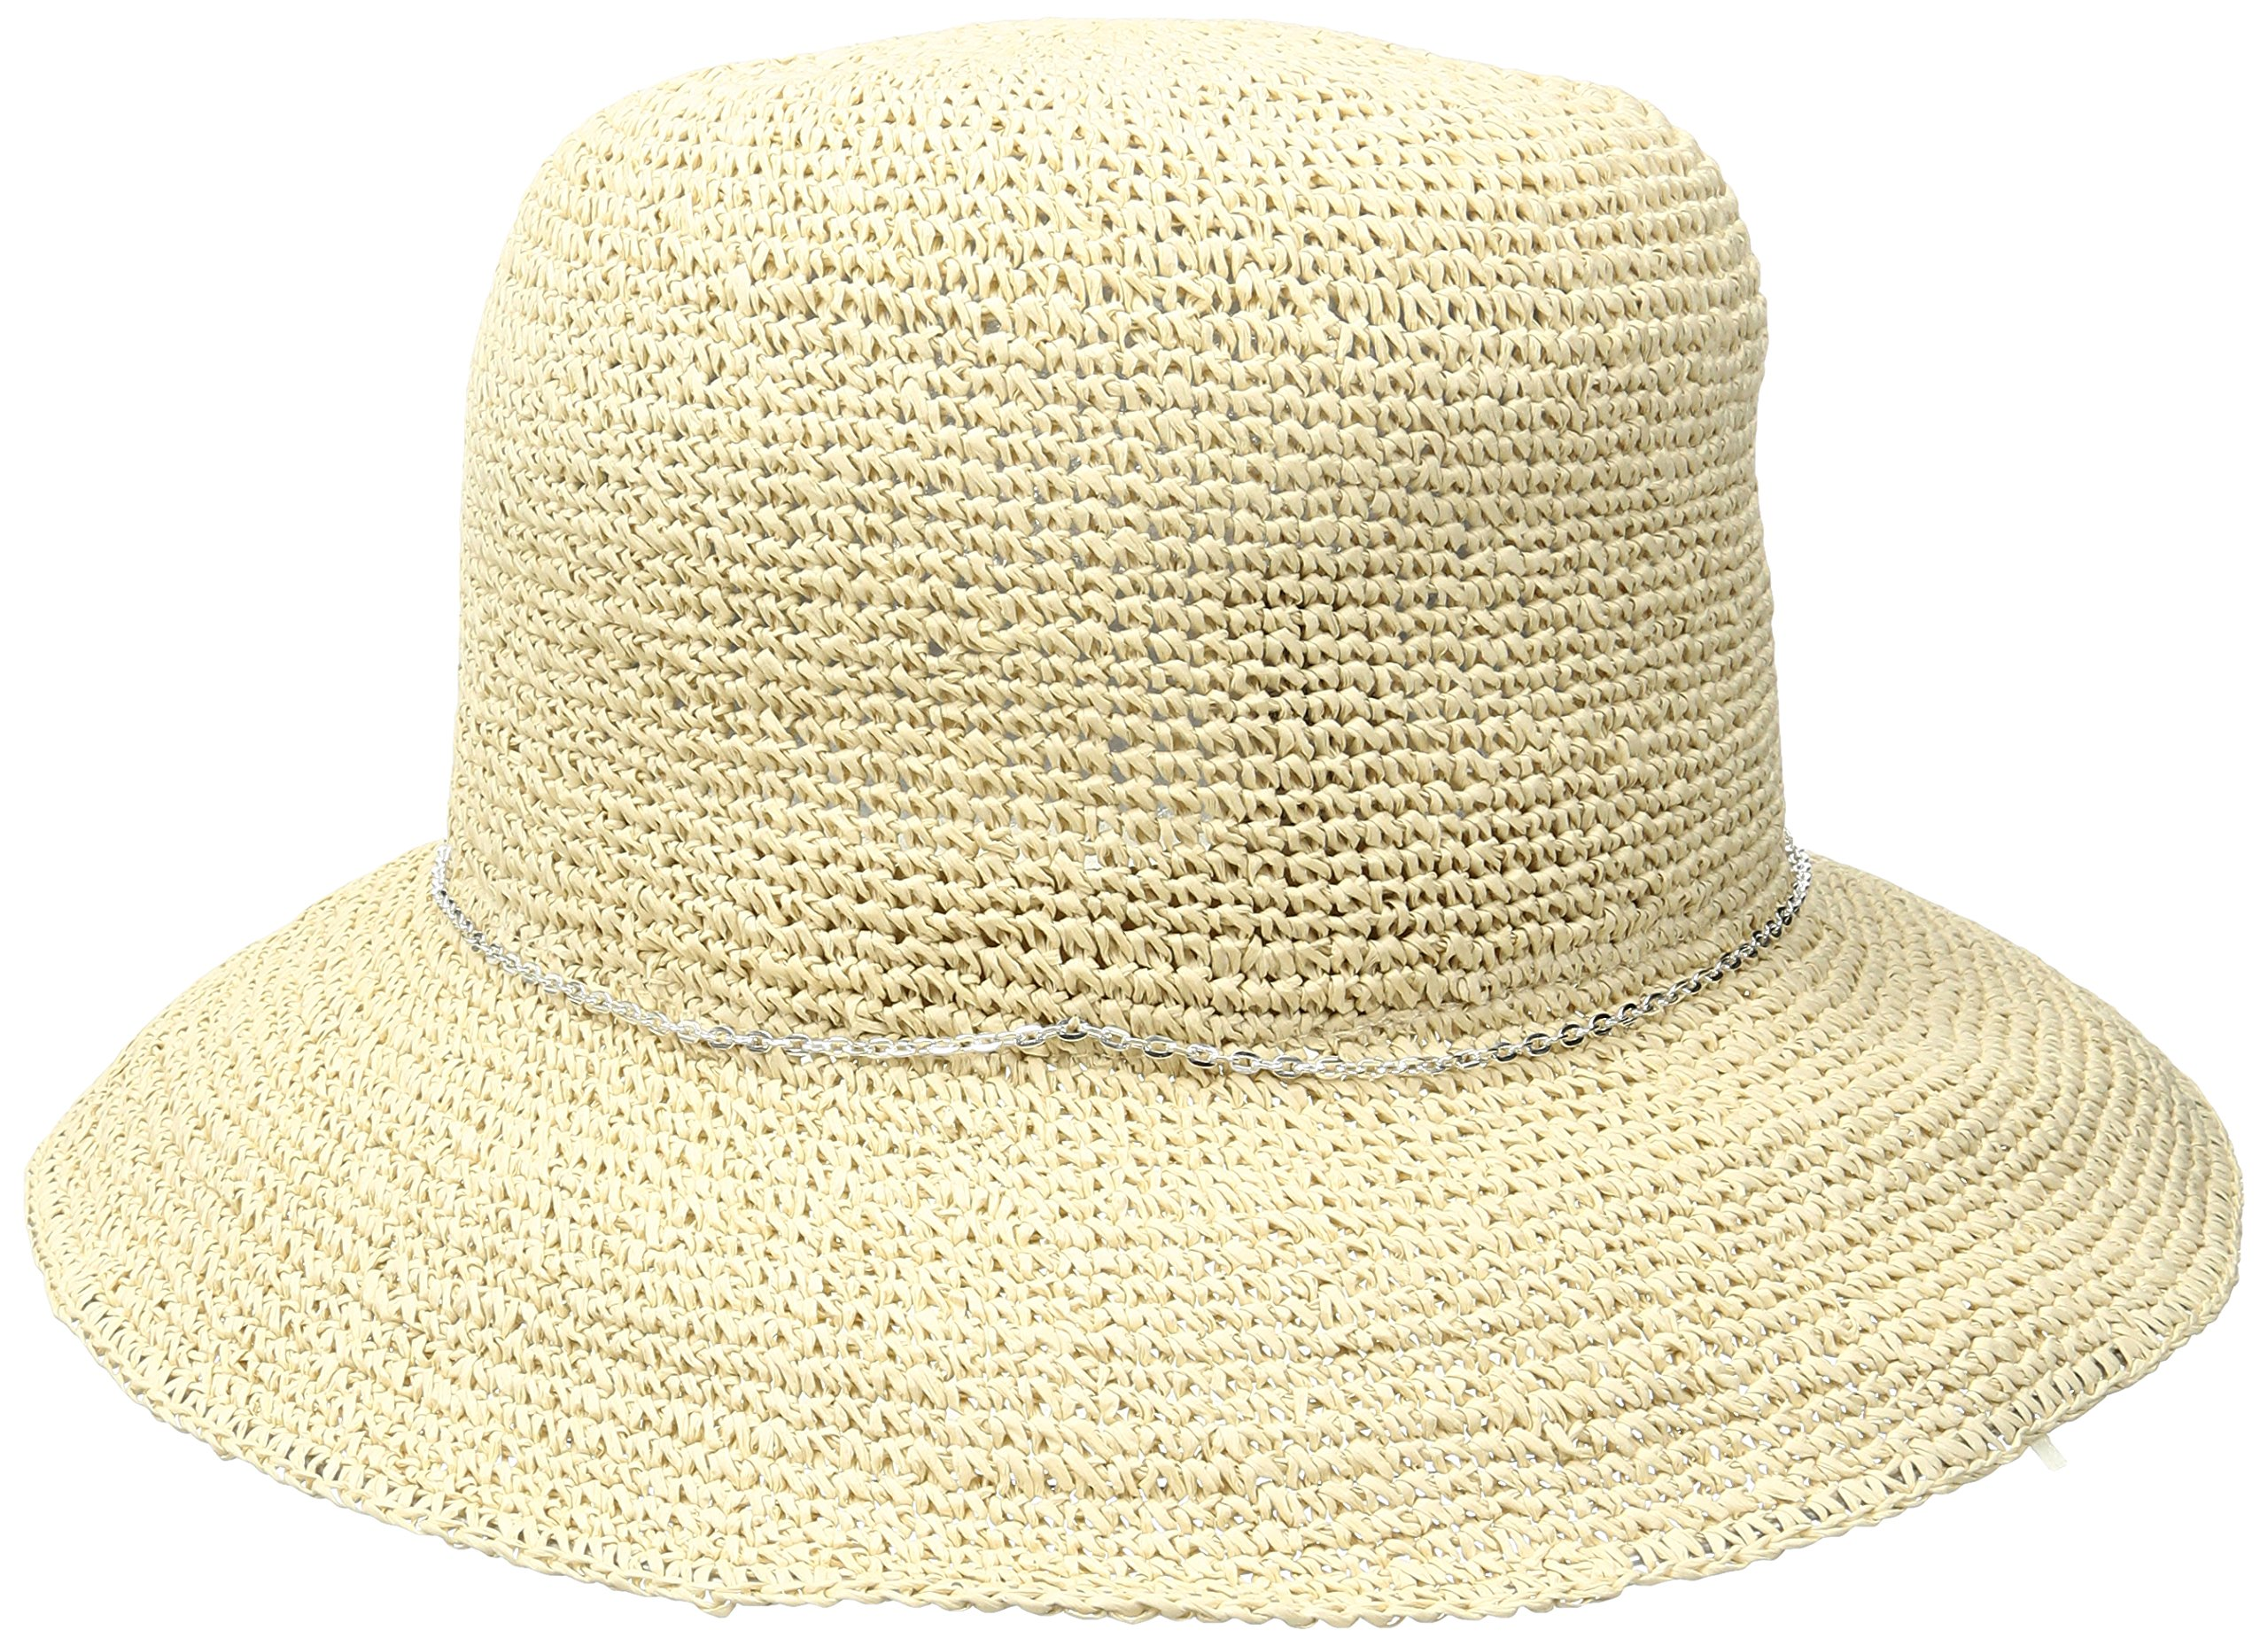 Soia & Kyo Women's Dorothea Wide Brim Crochet Hat with Chain Trim, Tan, One Size by Soia & Kyo (Image #2)